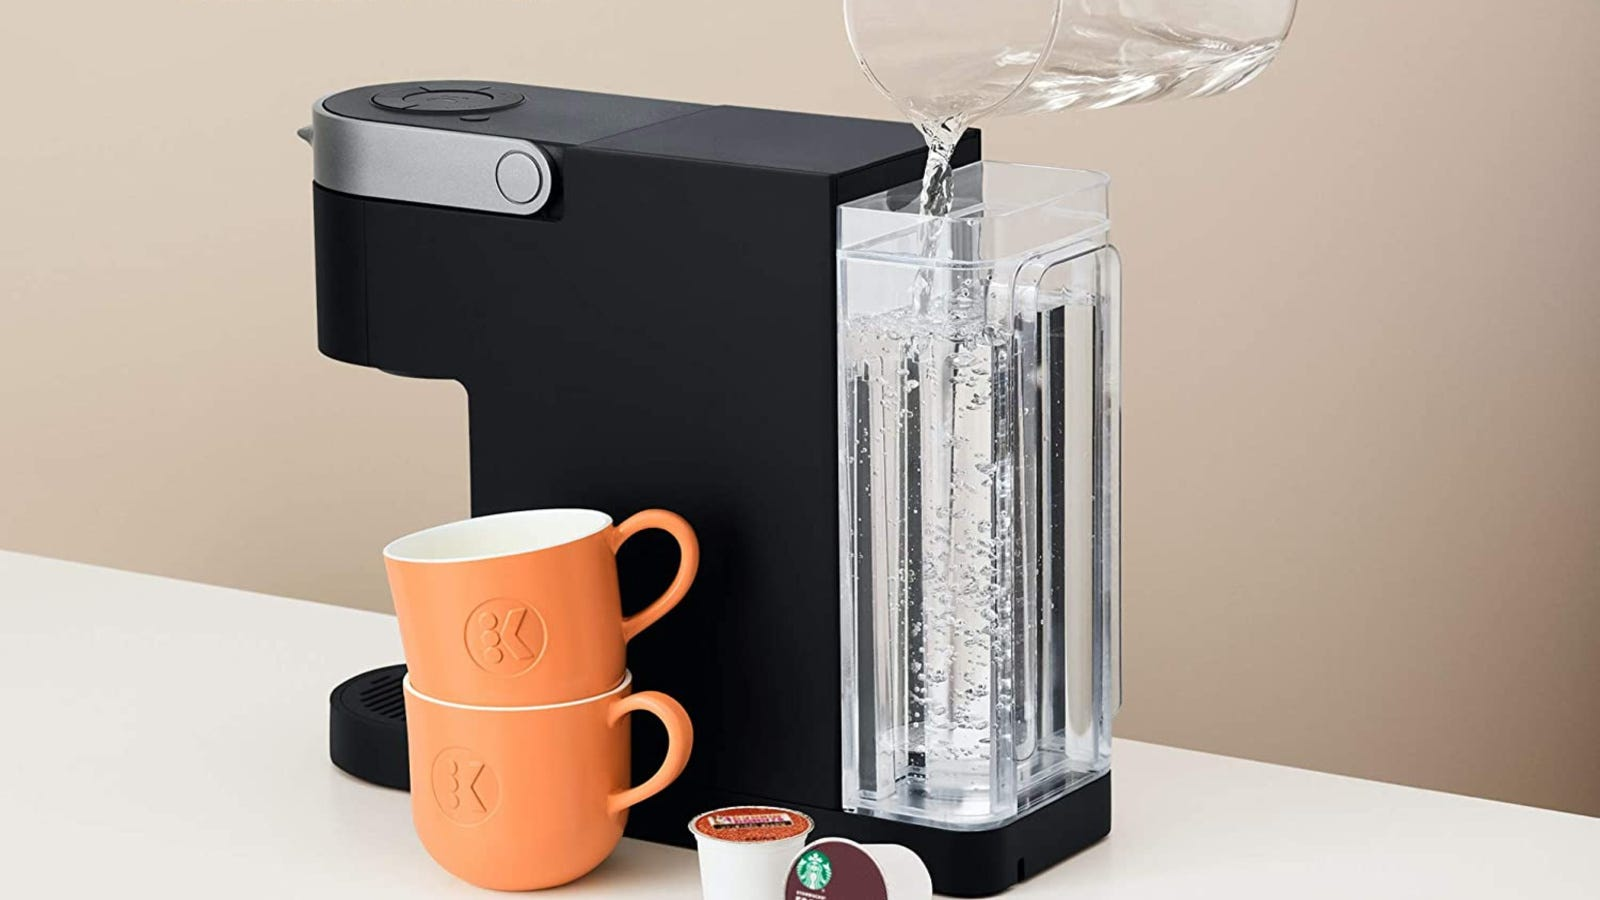 A fancy self serve Keurig coffee maker being refilled with water with two coffee cups next to the machine.